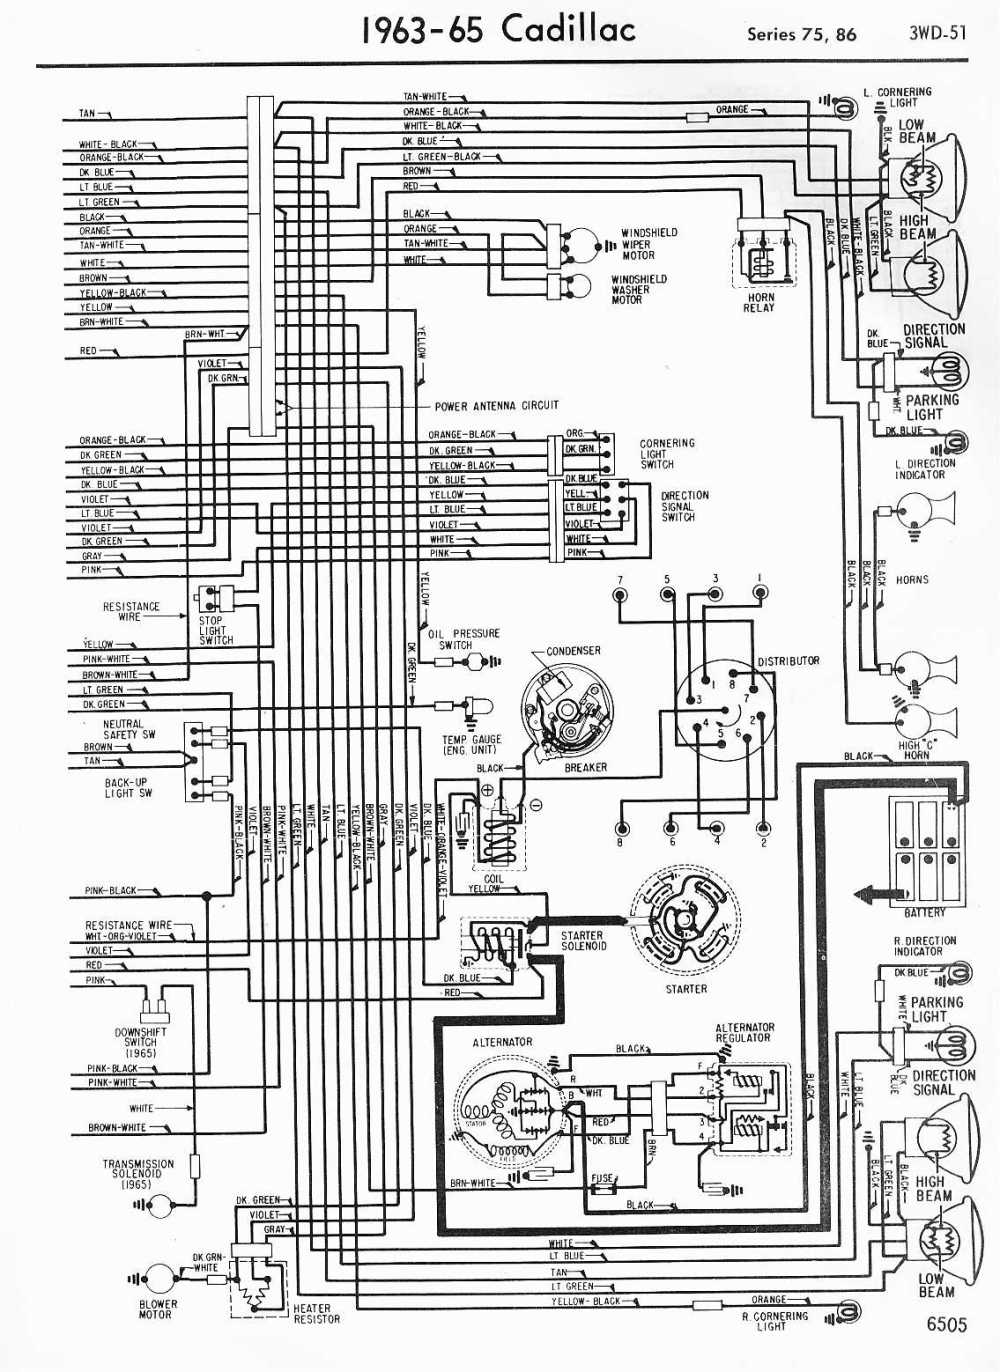 medium resolution of 1955 cadillac wiring diagram wiring diagrams konsult 55 cadillac wiring diagram wiring diagram yer 1955 cadillac